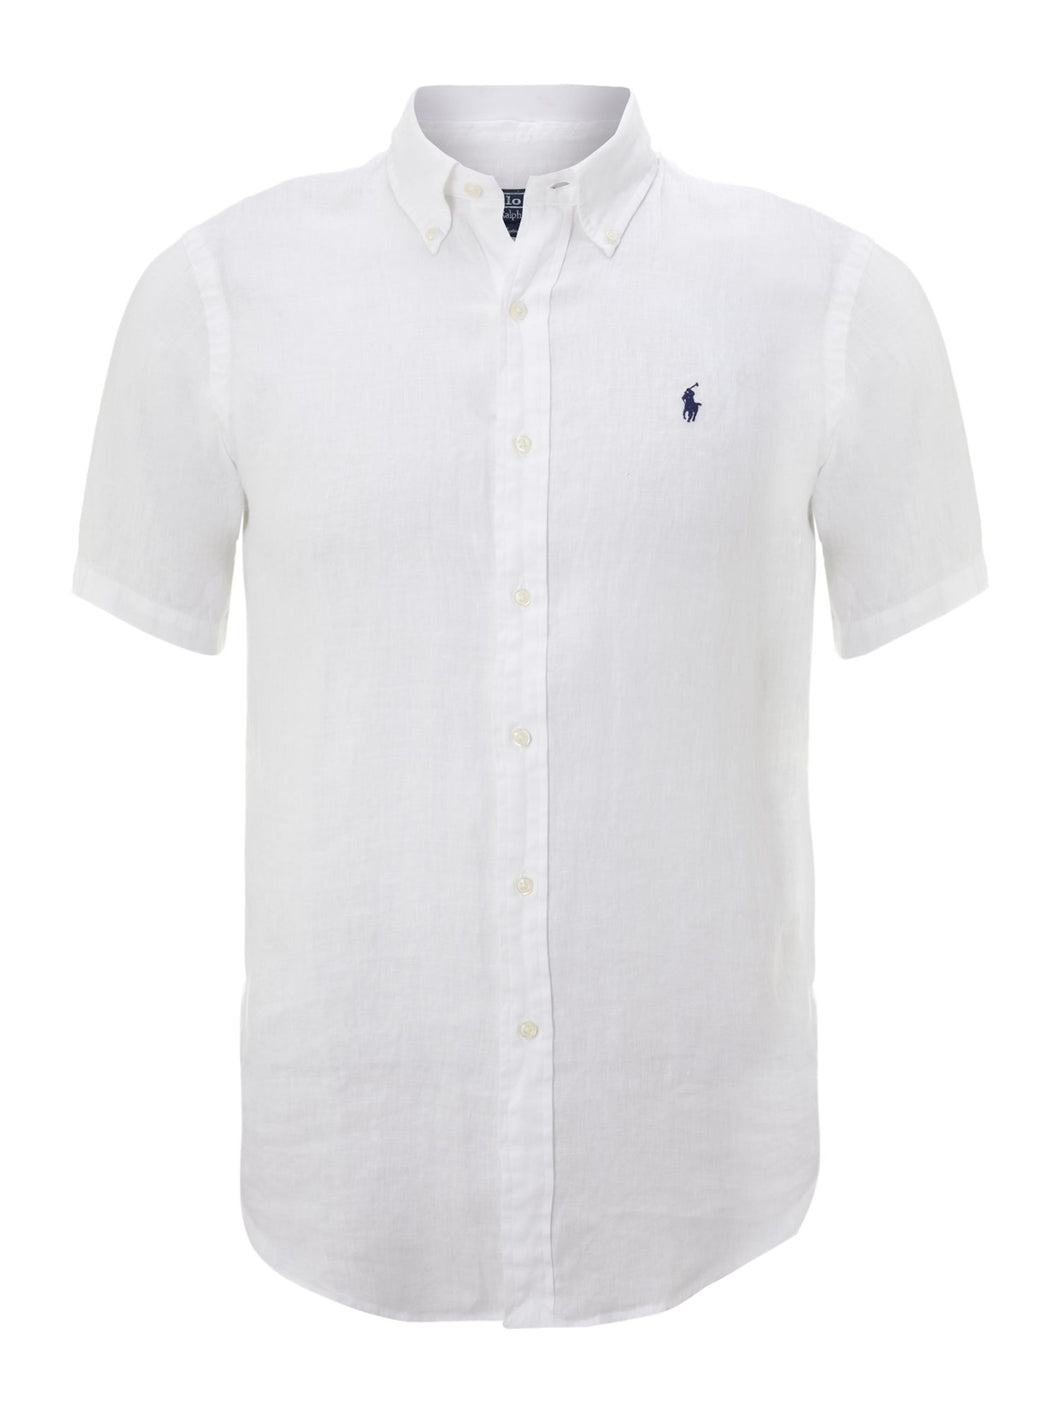 White Short Sleeved Classic Fit Shirt - white